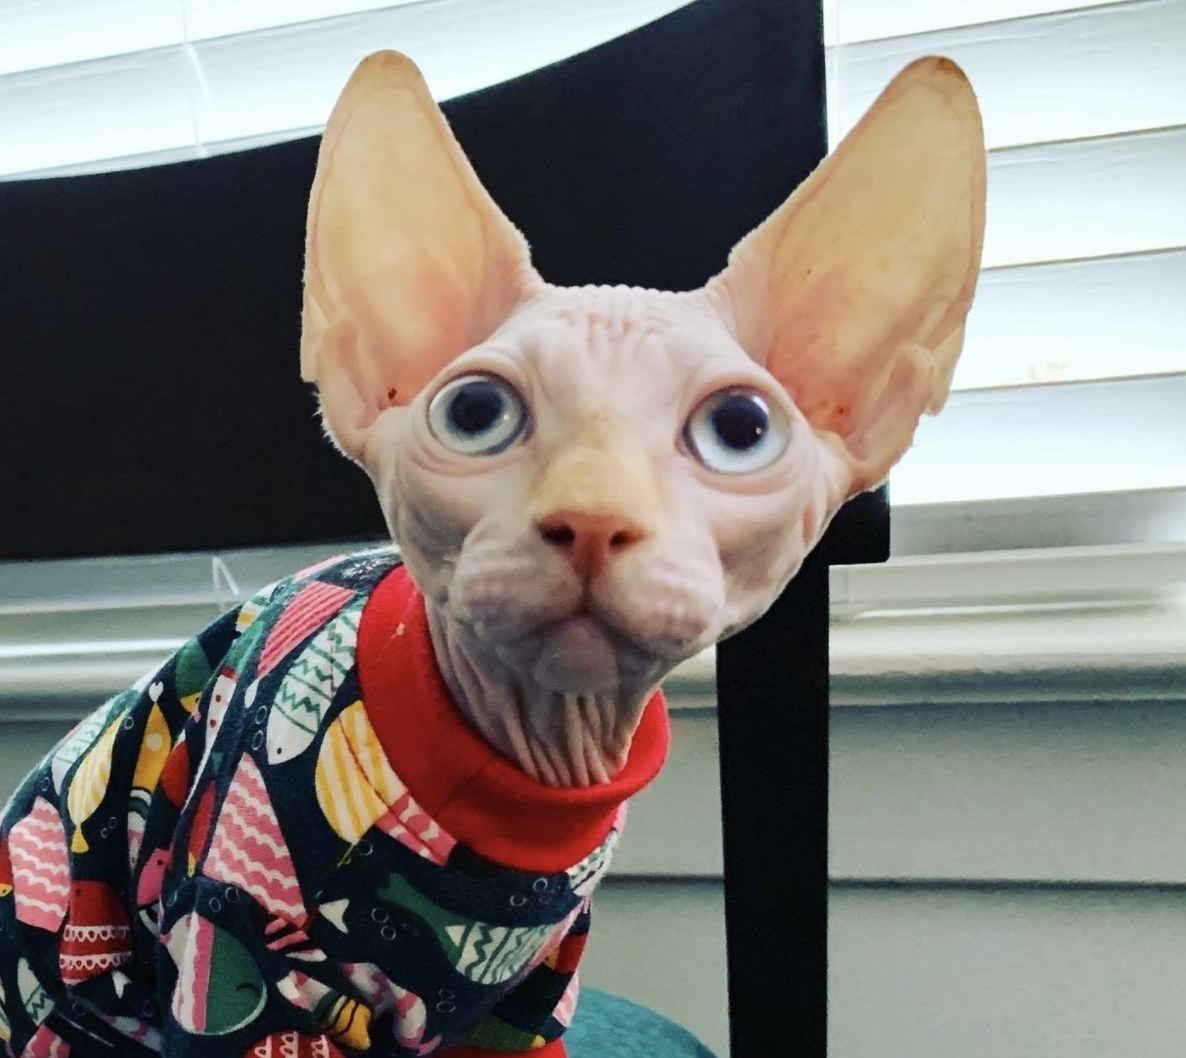 A hairless cat in pajamas